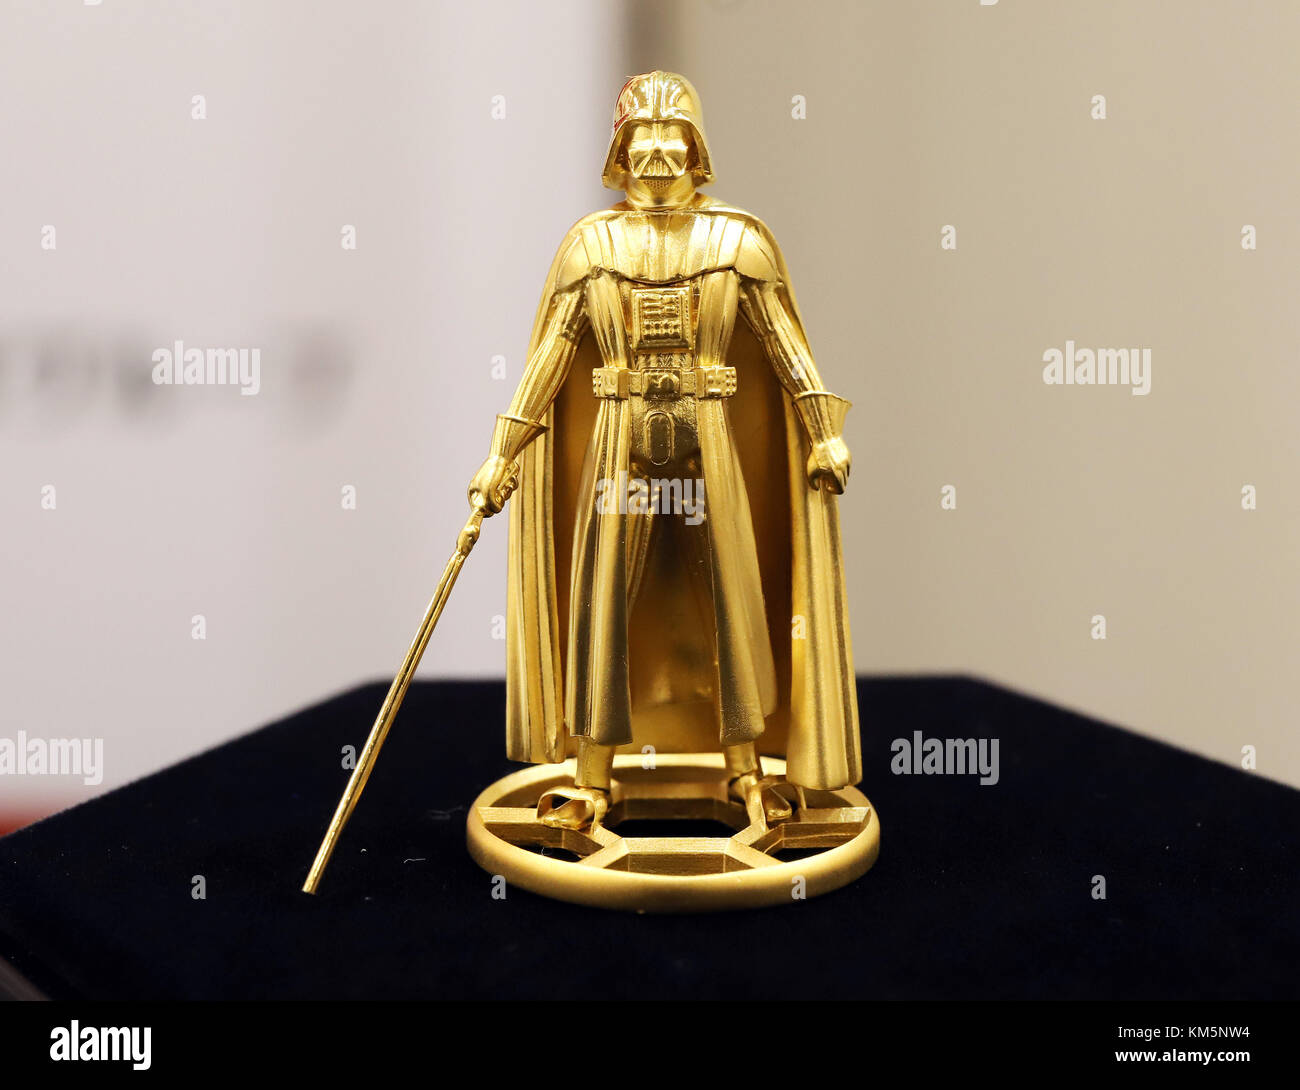 Tokyo, Japan. 5th December, 2017.  - A pure gold made figure of Star Wars character Darth Vader is displayed at - Stock Image